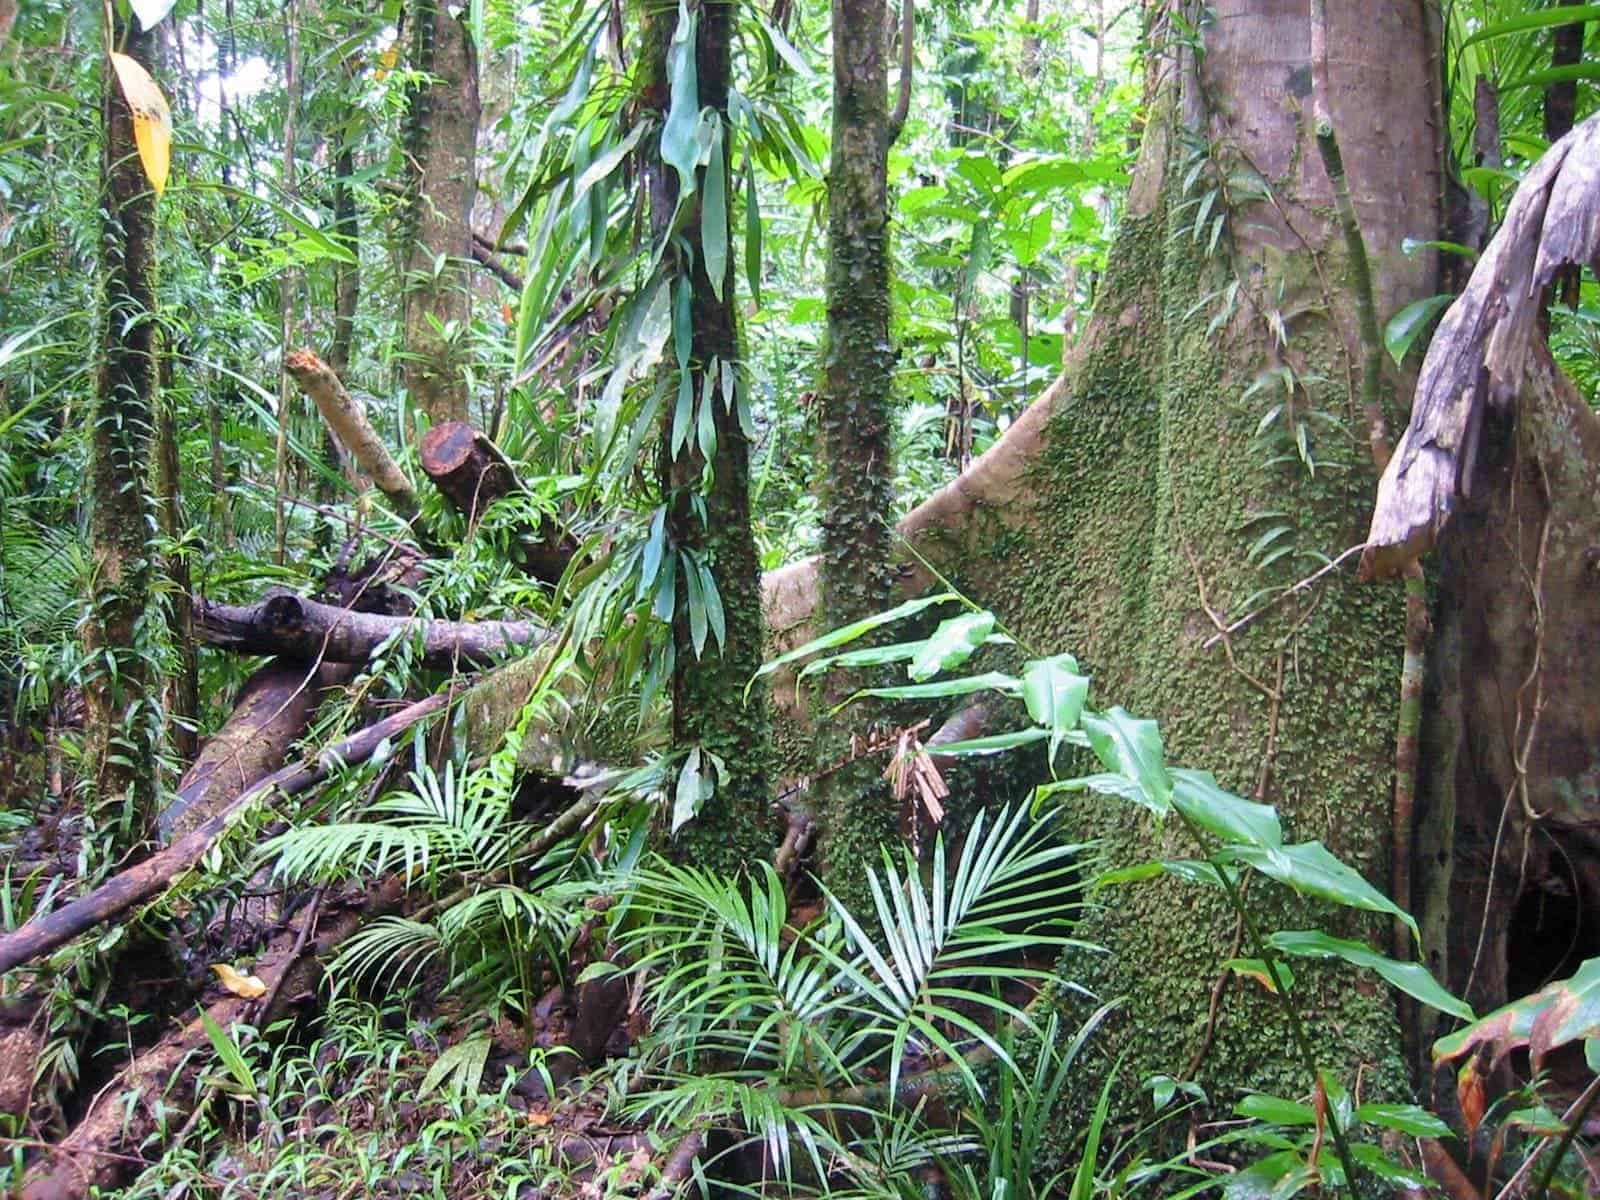 hight resolution of tropical rain forests contain millions of species image credits thomas schoch